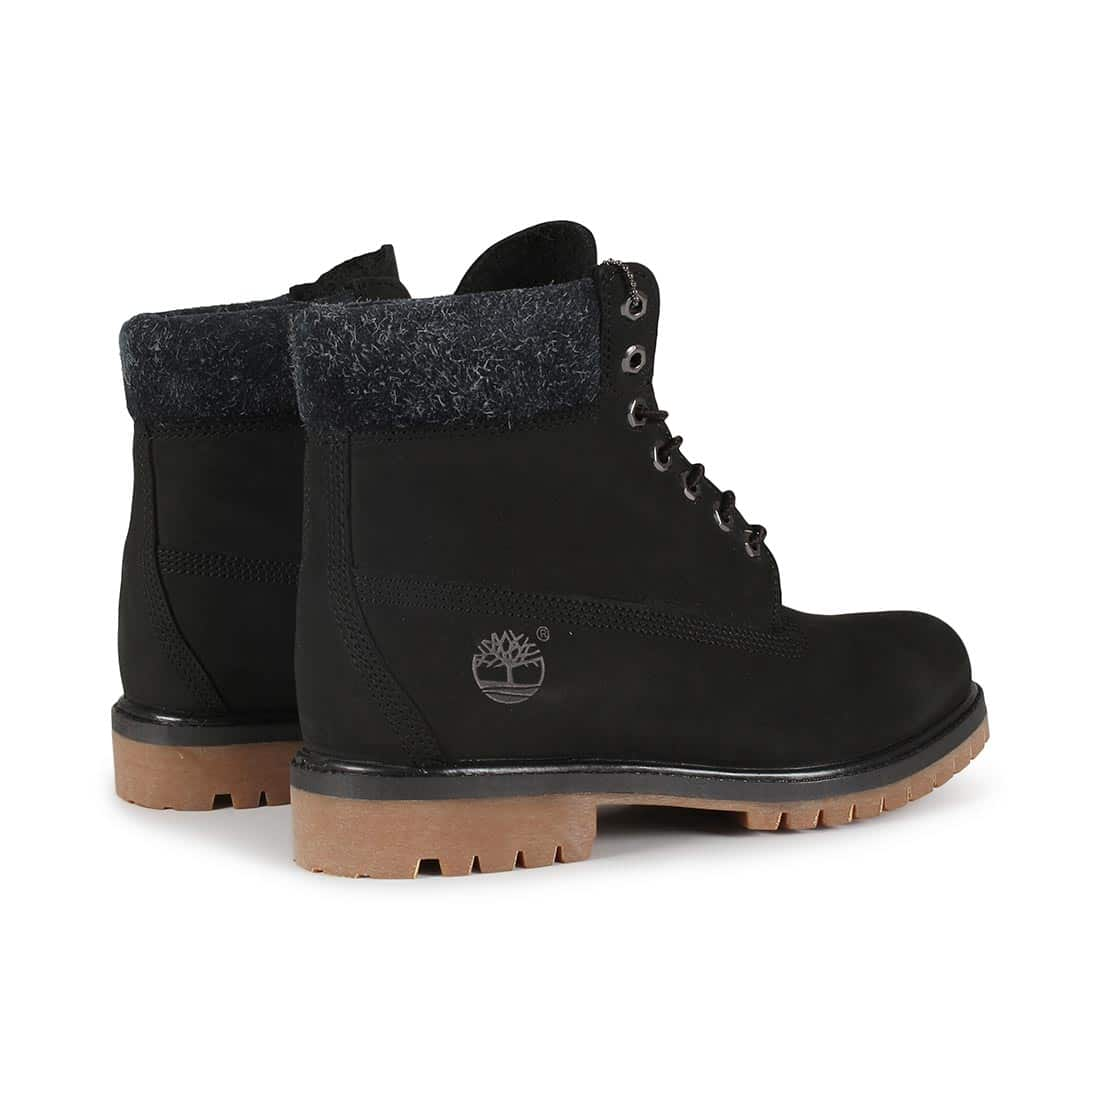 f38a7147a938 Timberland 6 Inch Premium Boot - Black Nubuck   Hairy Suede